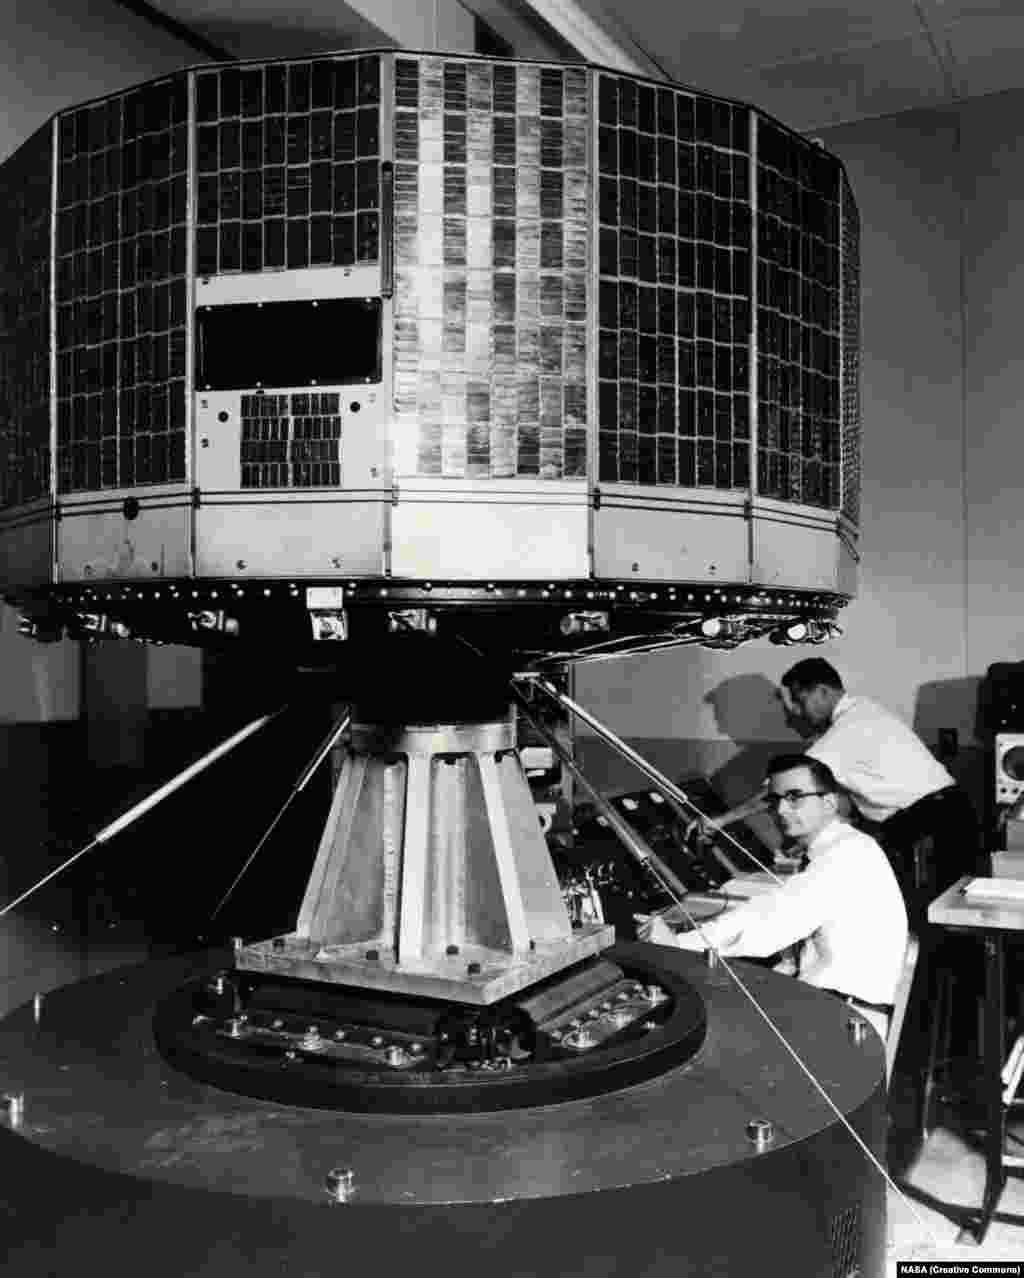 NASA's Tiros 1 weather satellite being jiggled during a test to see if it will survive the violent ride into space in 1960. Tiros was the first attempt at a weather satellite that could transmit a view of incoming weather from its two cameras to a control center back on Earth.